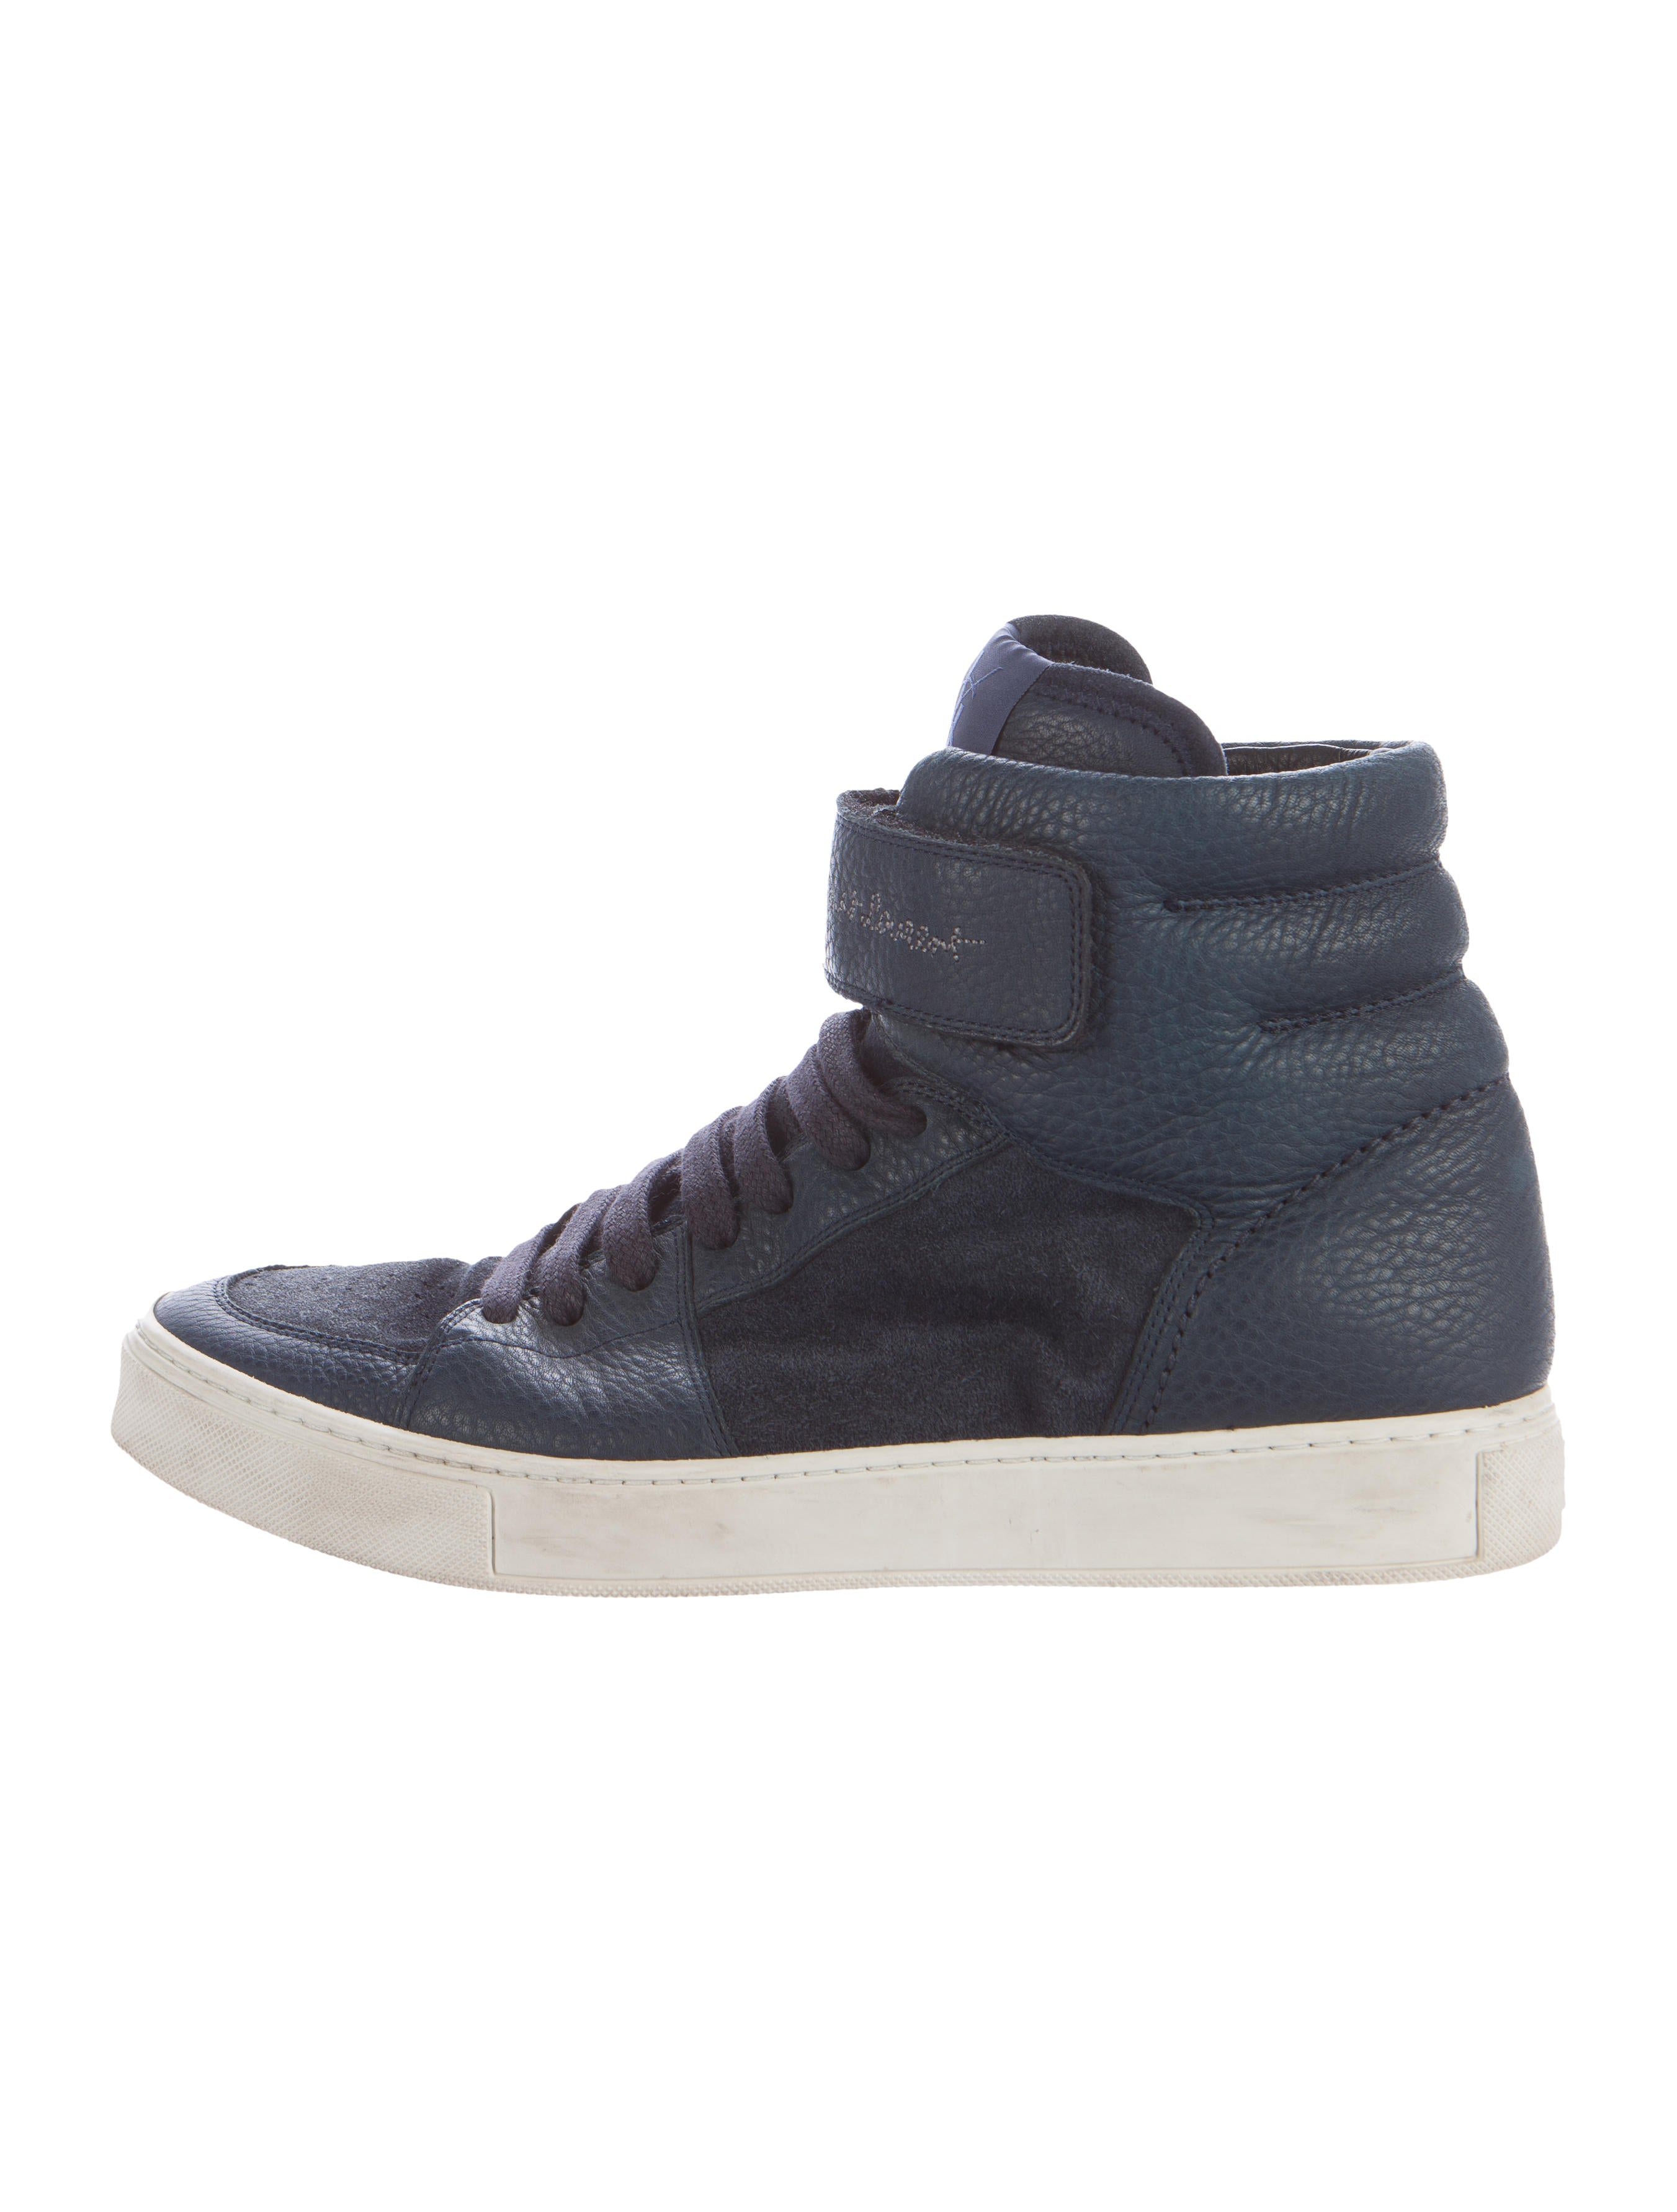 yves saint laurent leather suede high top sneakers mens shoes yve57635 the realreal. Black Bedroom Furniture Sets. Home Design Ideas